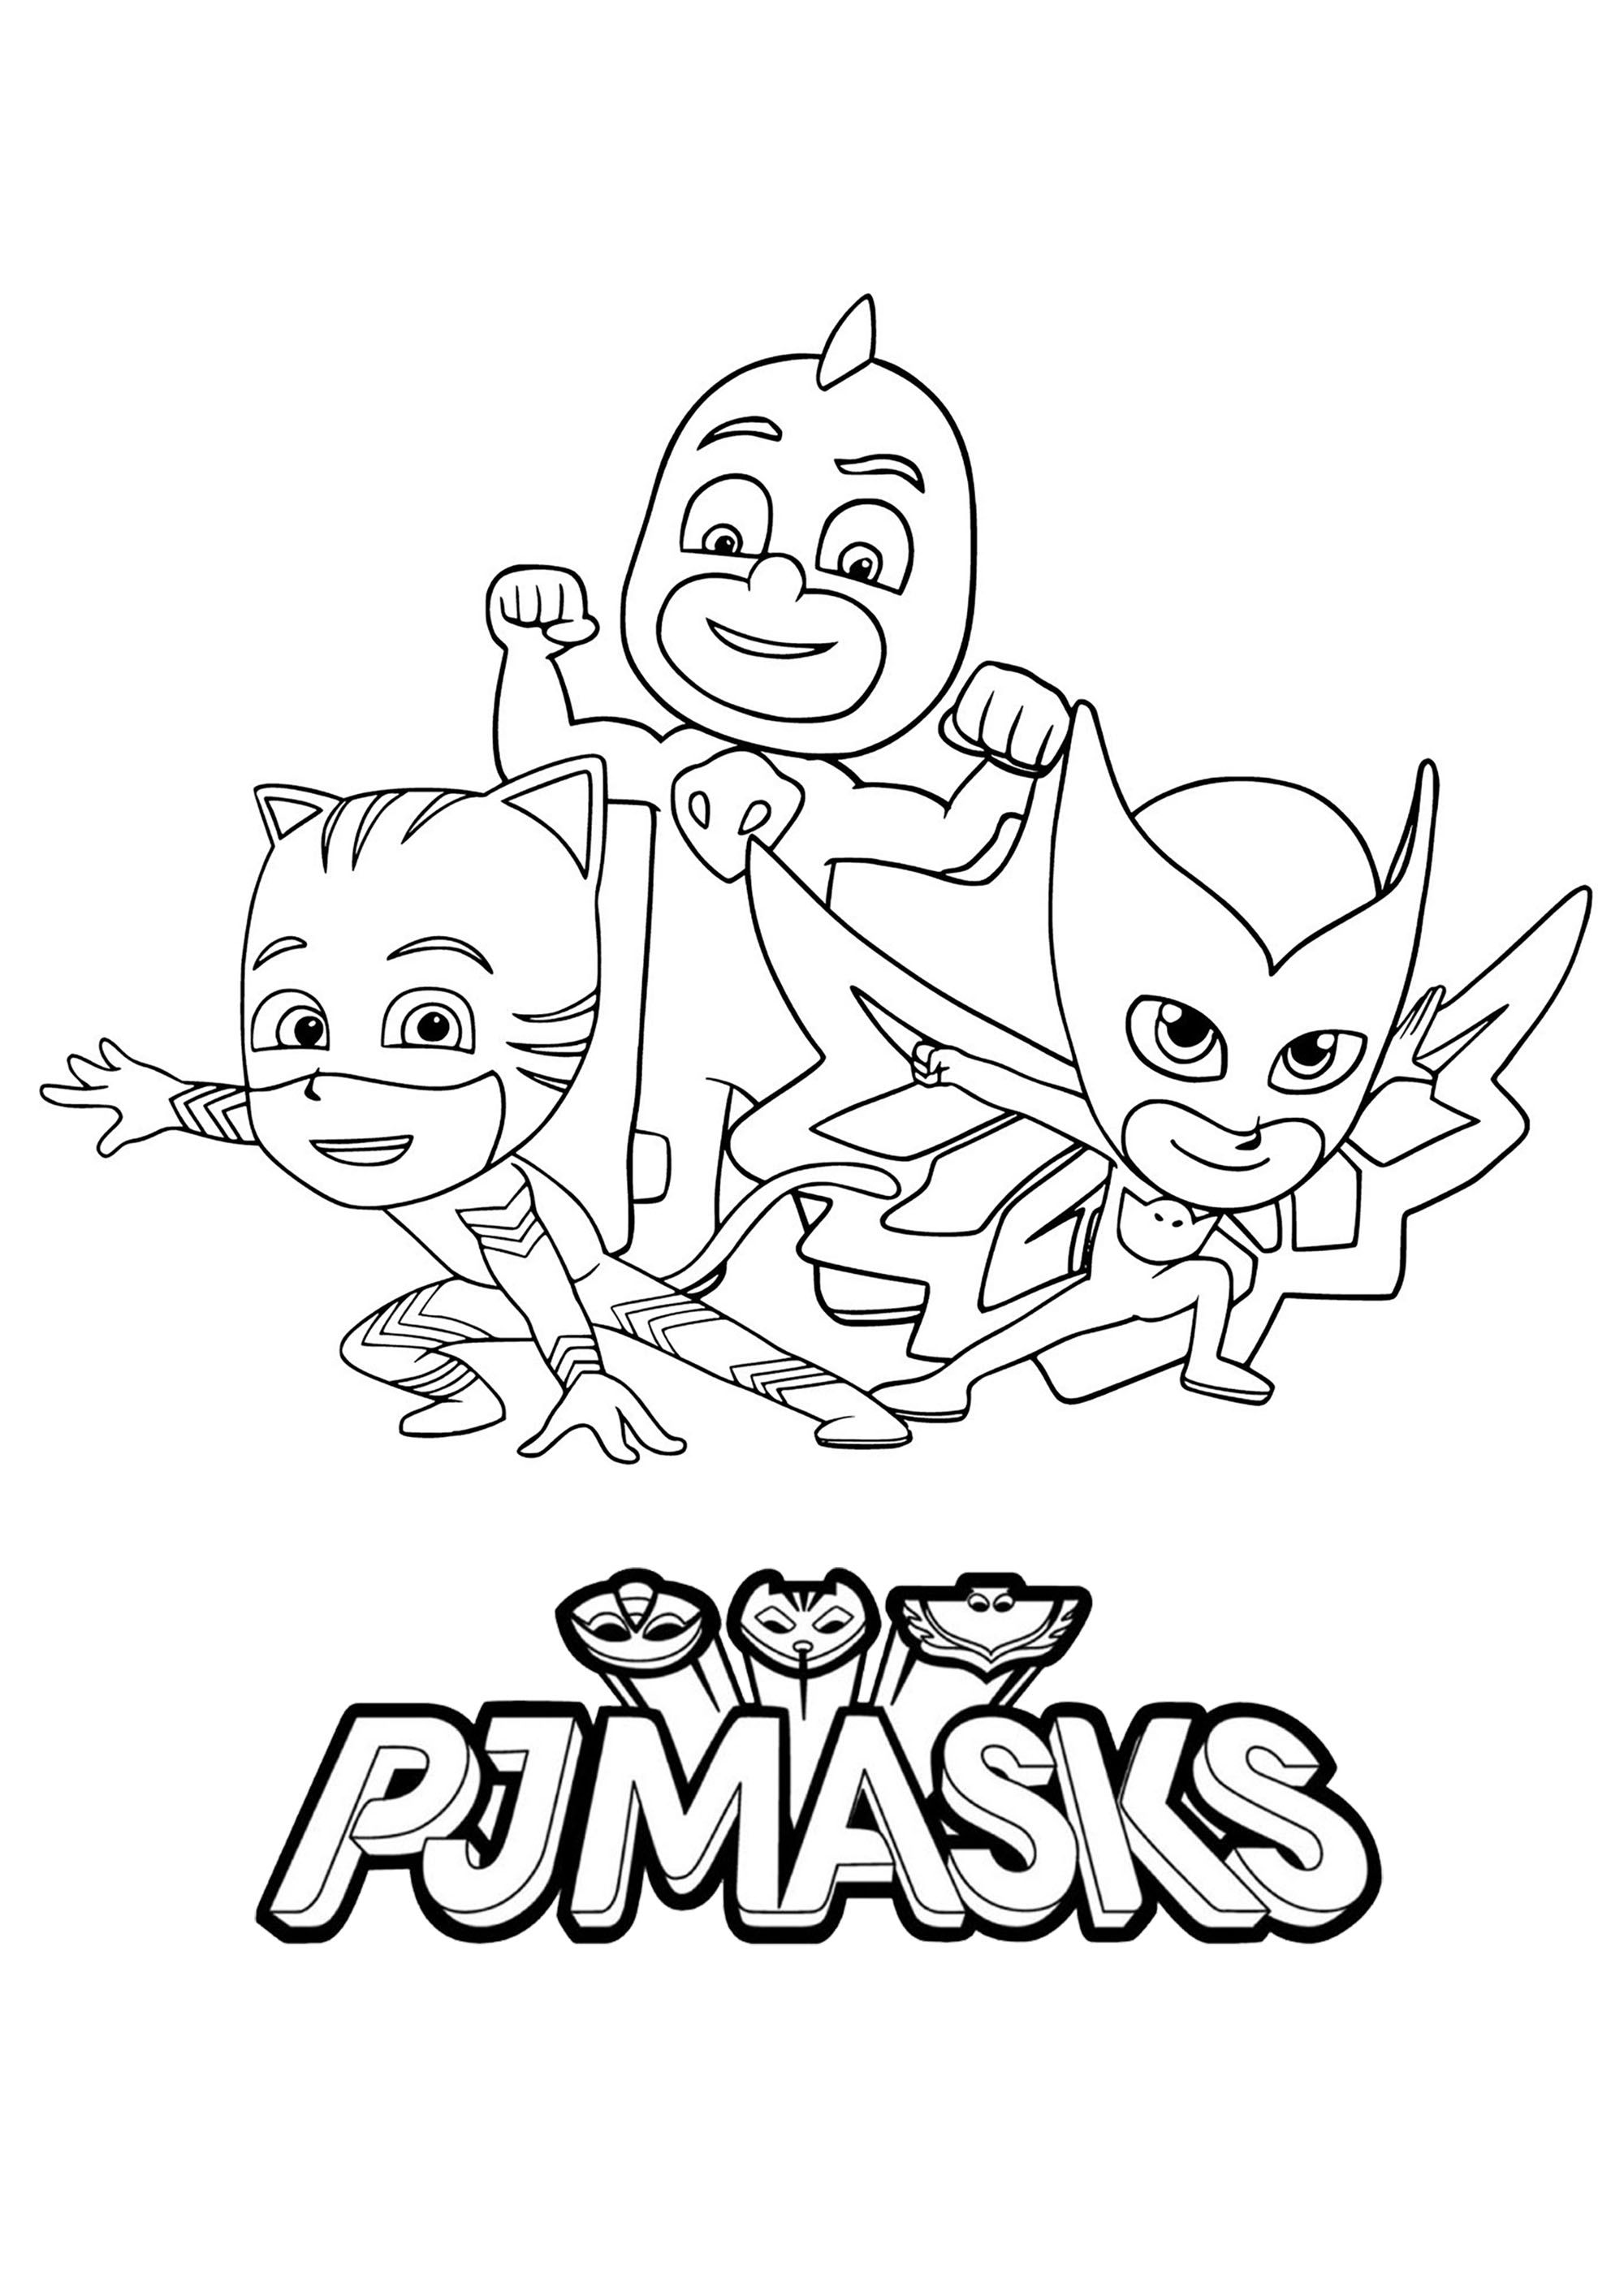 Pj Masks To Color For Children Pj Masks Coloring Pages For Kids